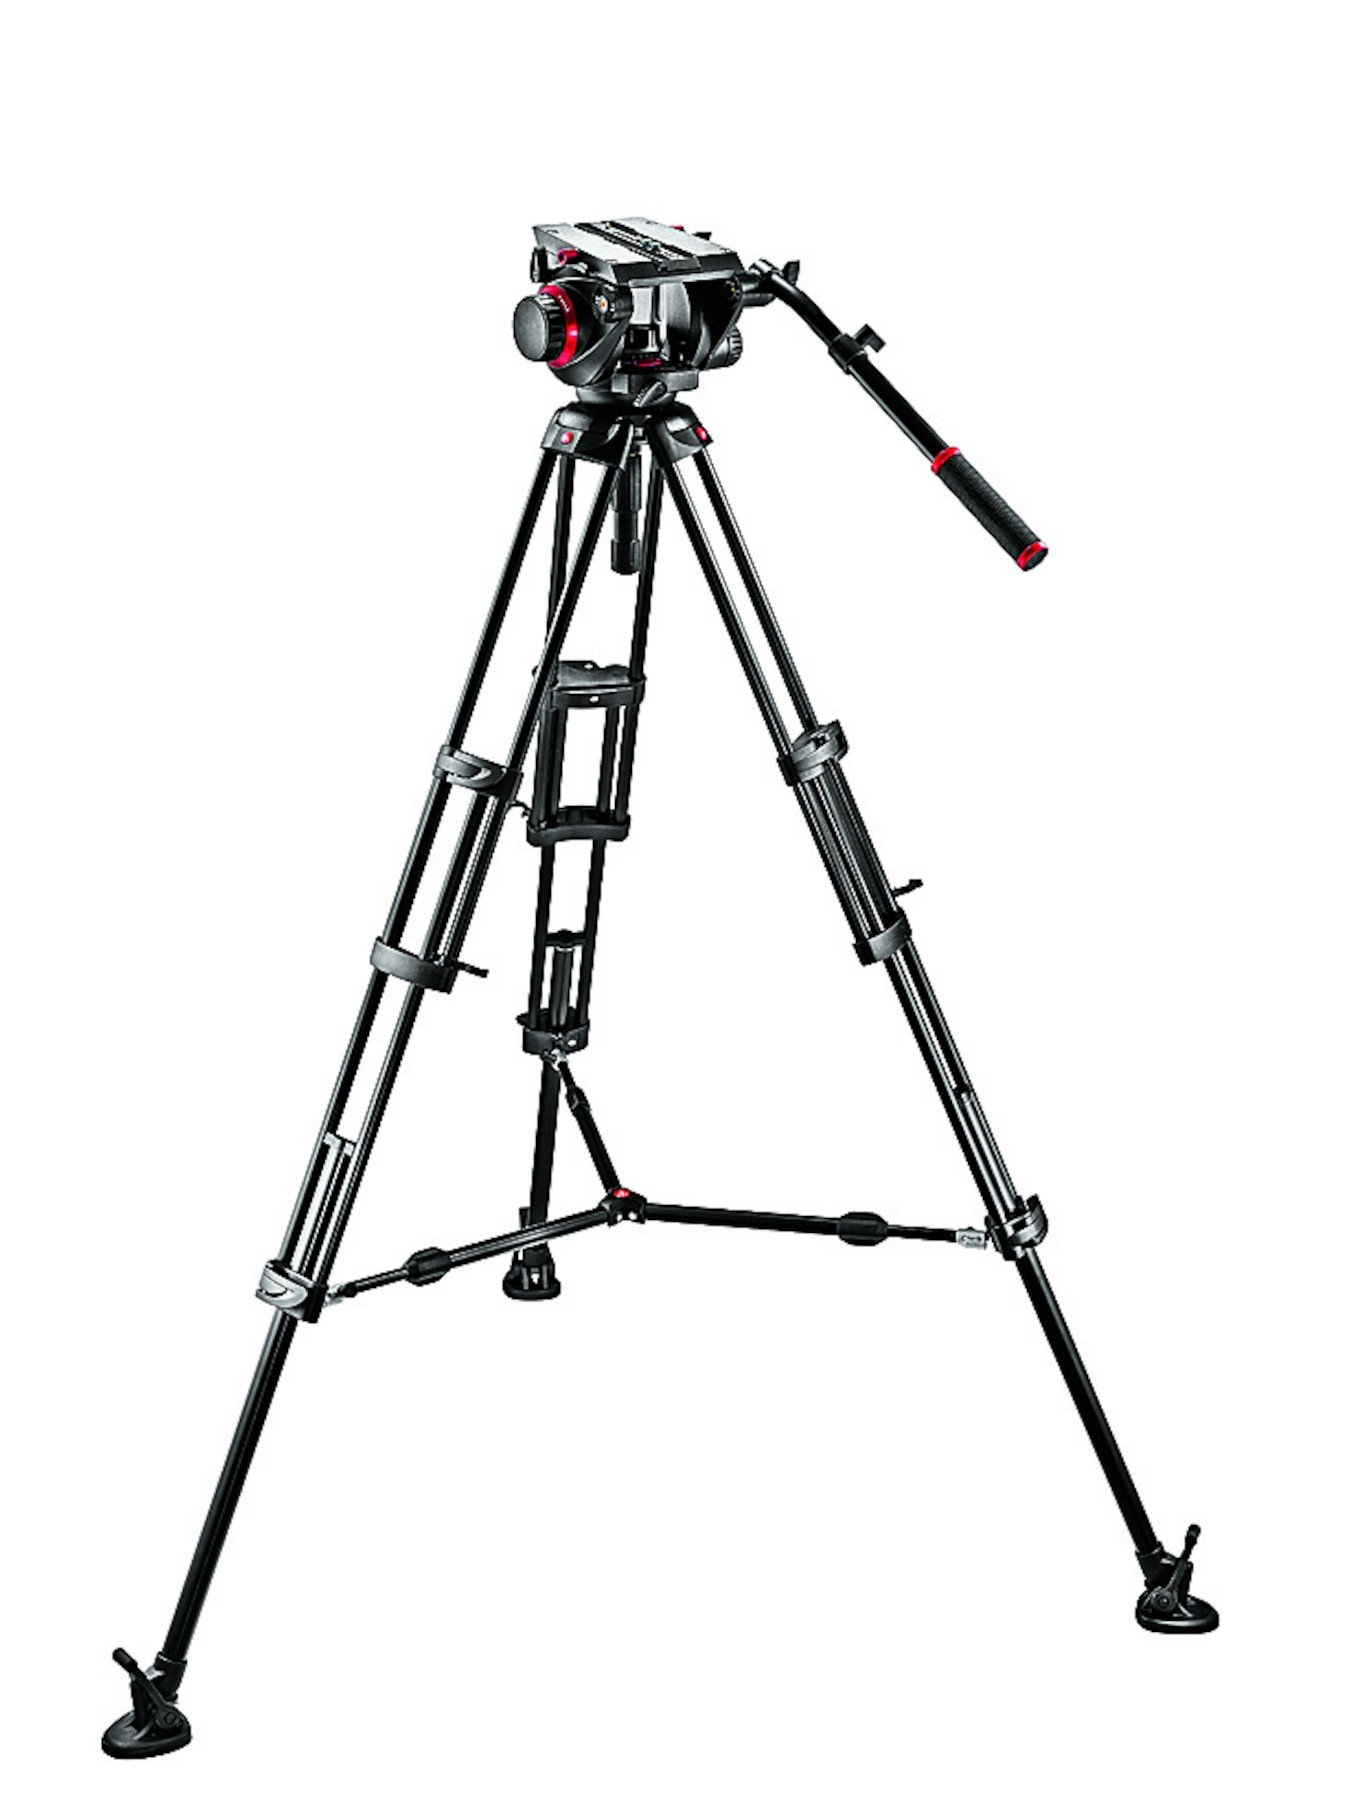 Manfrotto 509HD Video Head with 545B Tripod Legs and Mid-Level Spreader